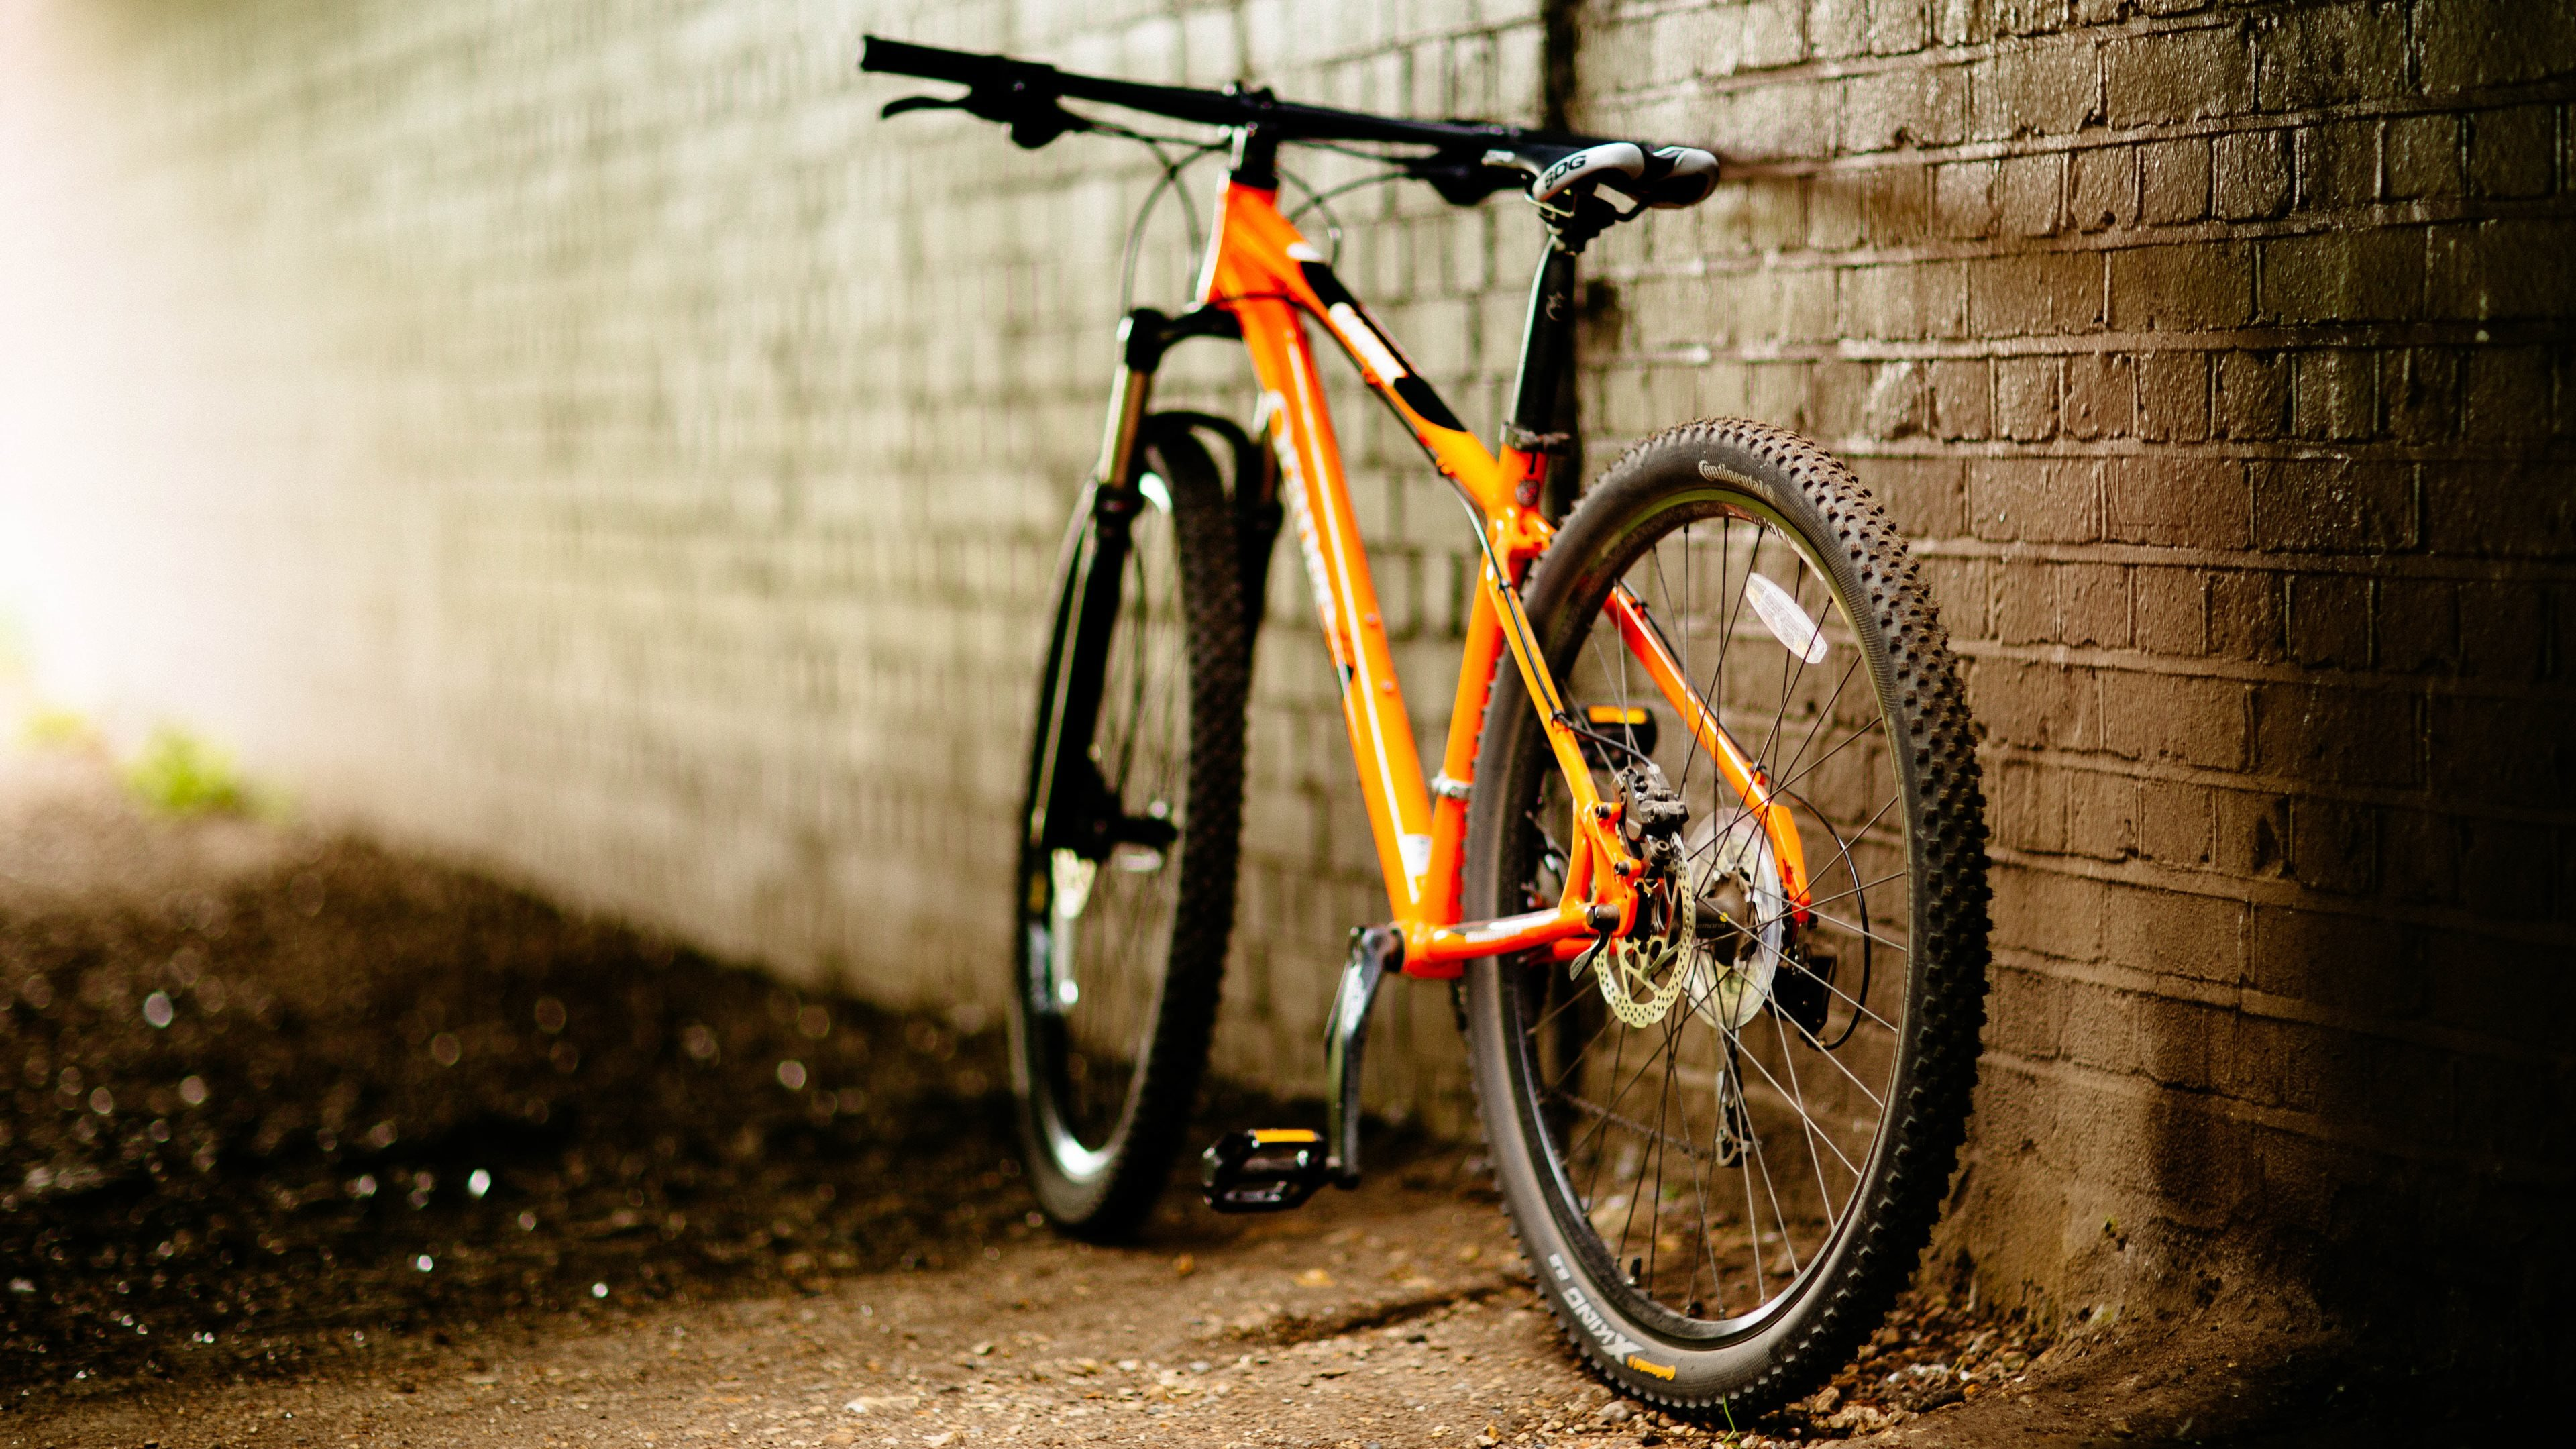 Free download Bicycle background ID:134866 ultra hd 4k for PC